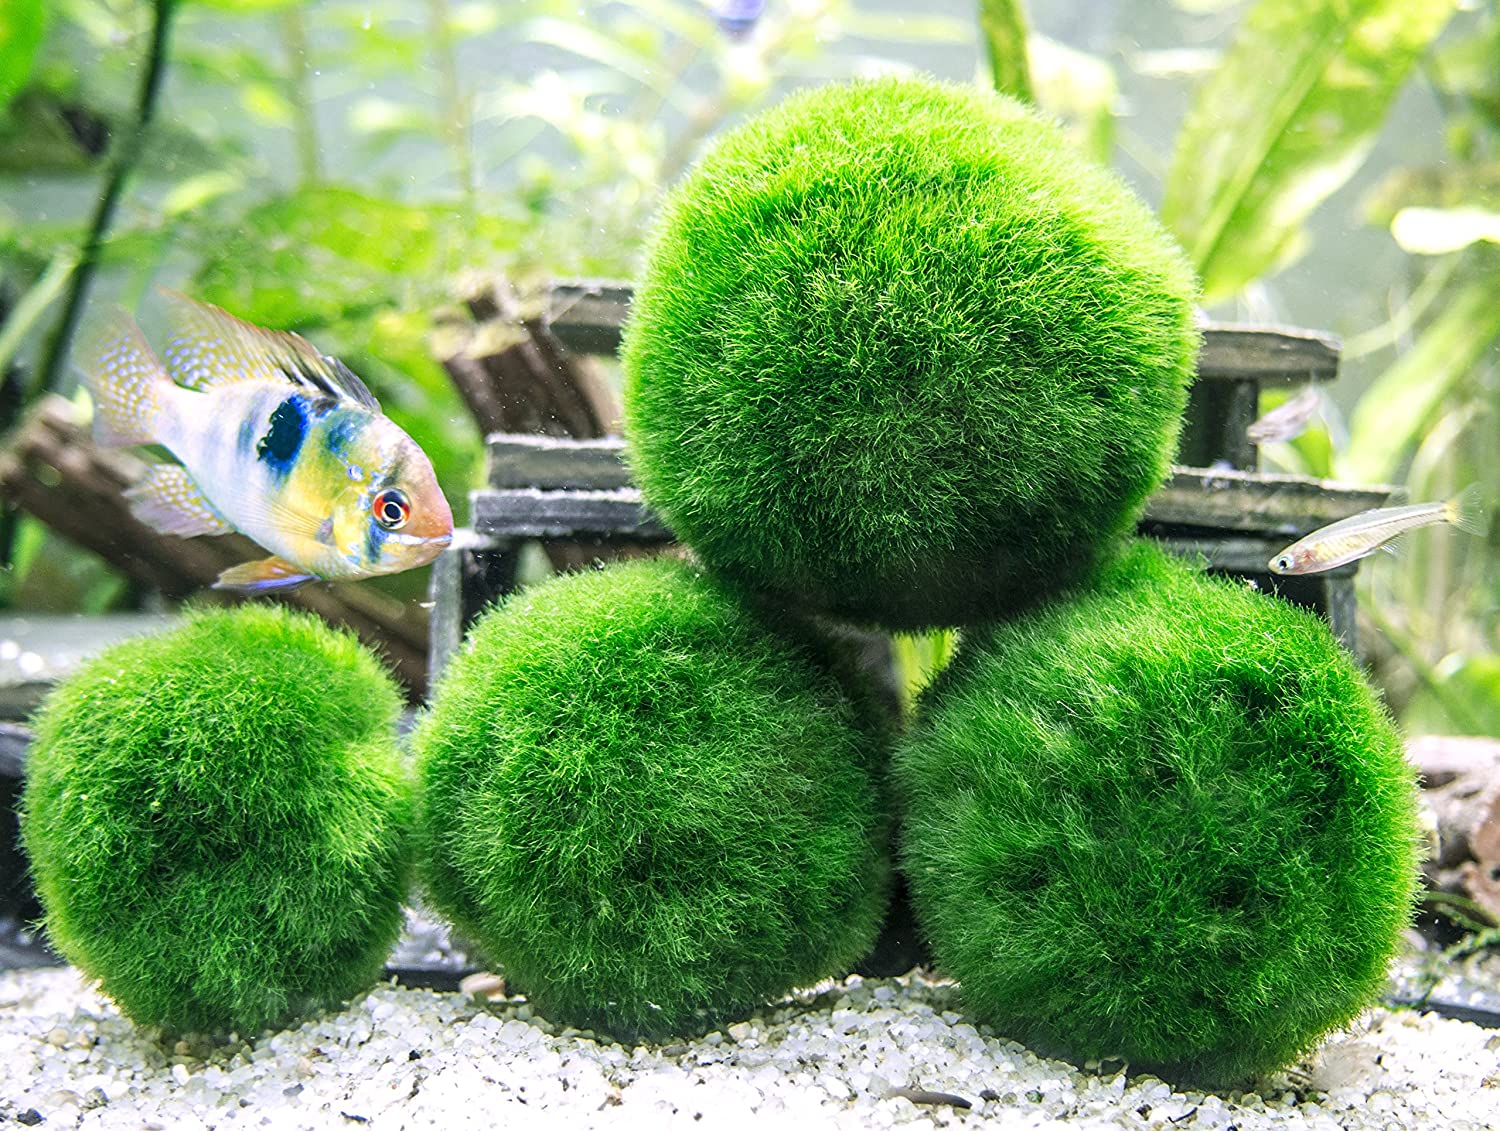 Aquatic Arts 4 Giant 2 to 2.5″ Very High Quality Real Marimo Moss Balls, X-Large